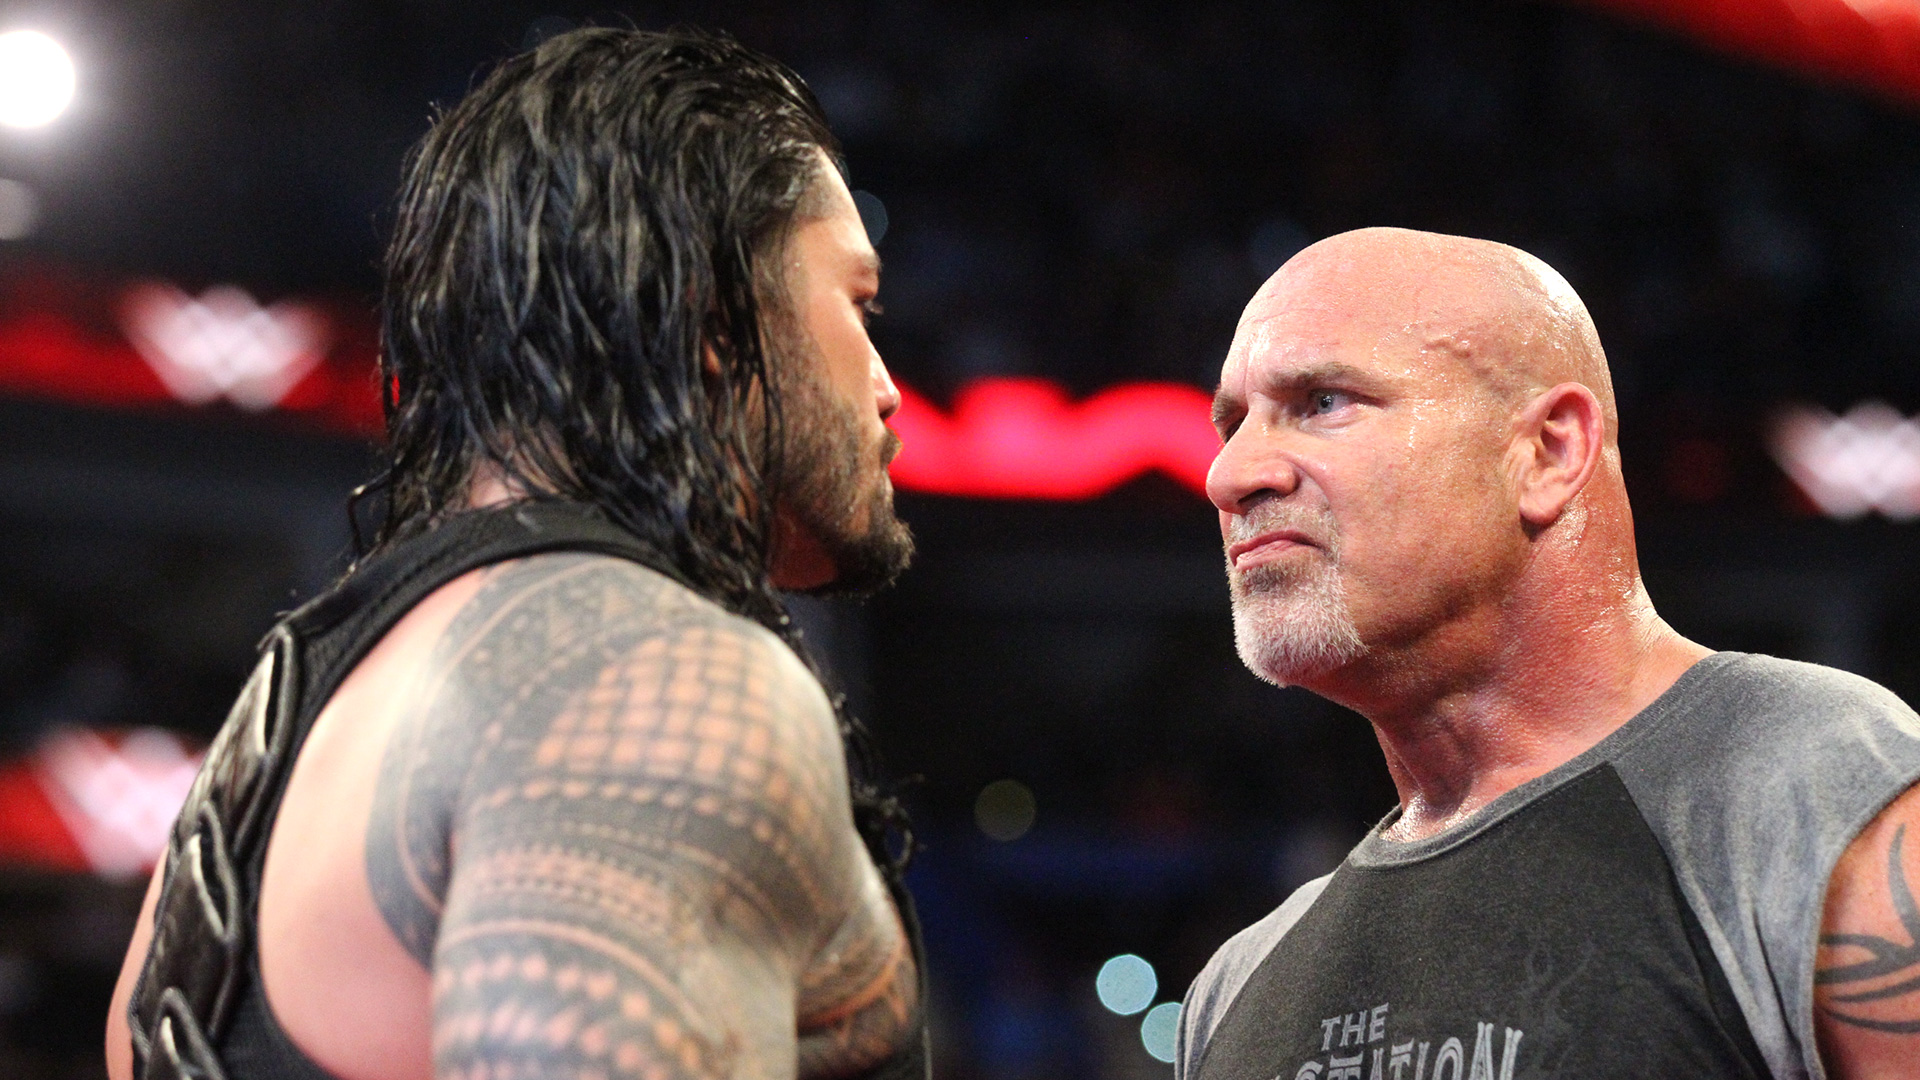 This Week in WWE – 5 Ups & 5 Downs